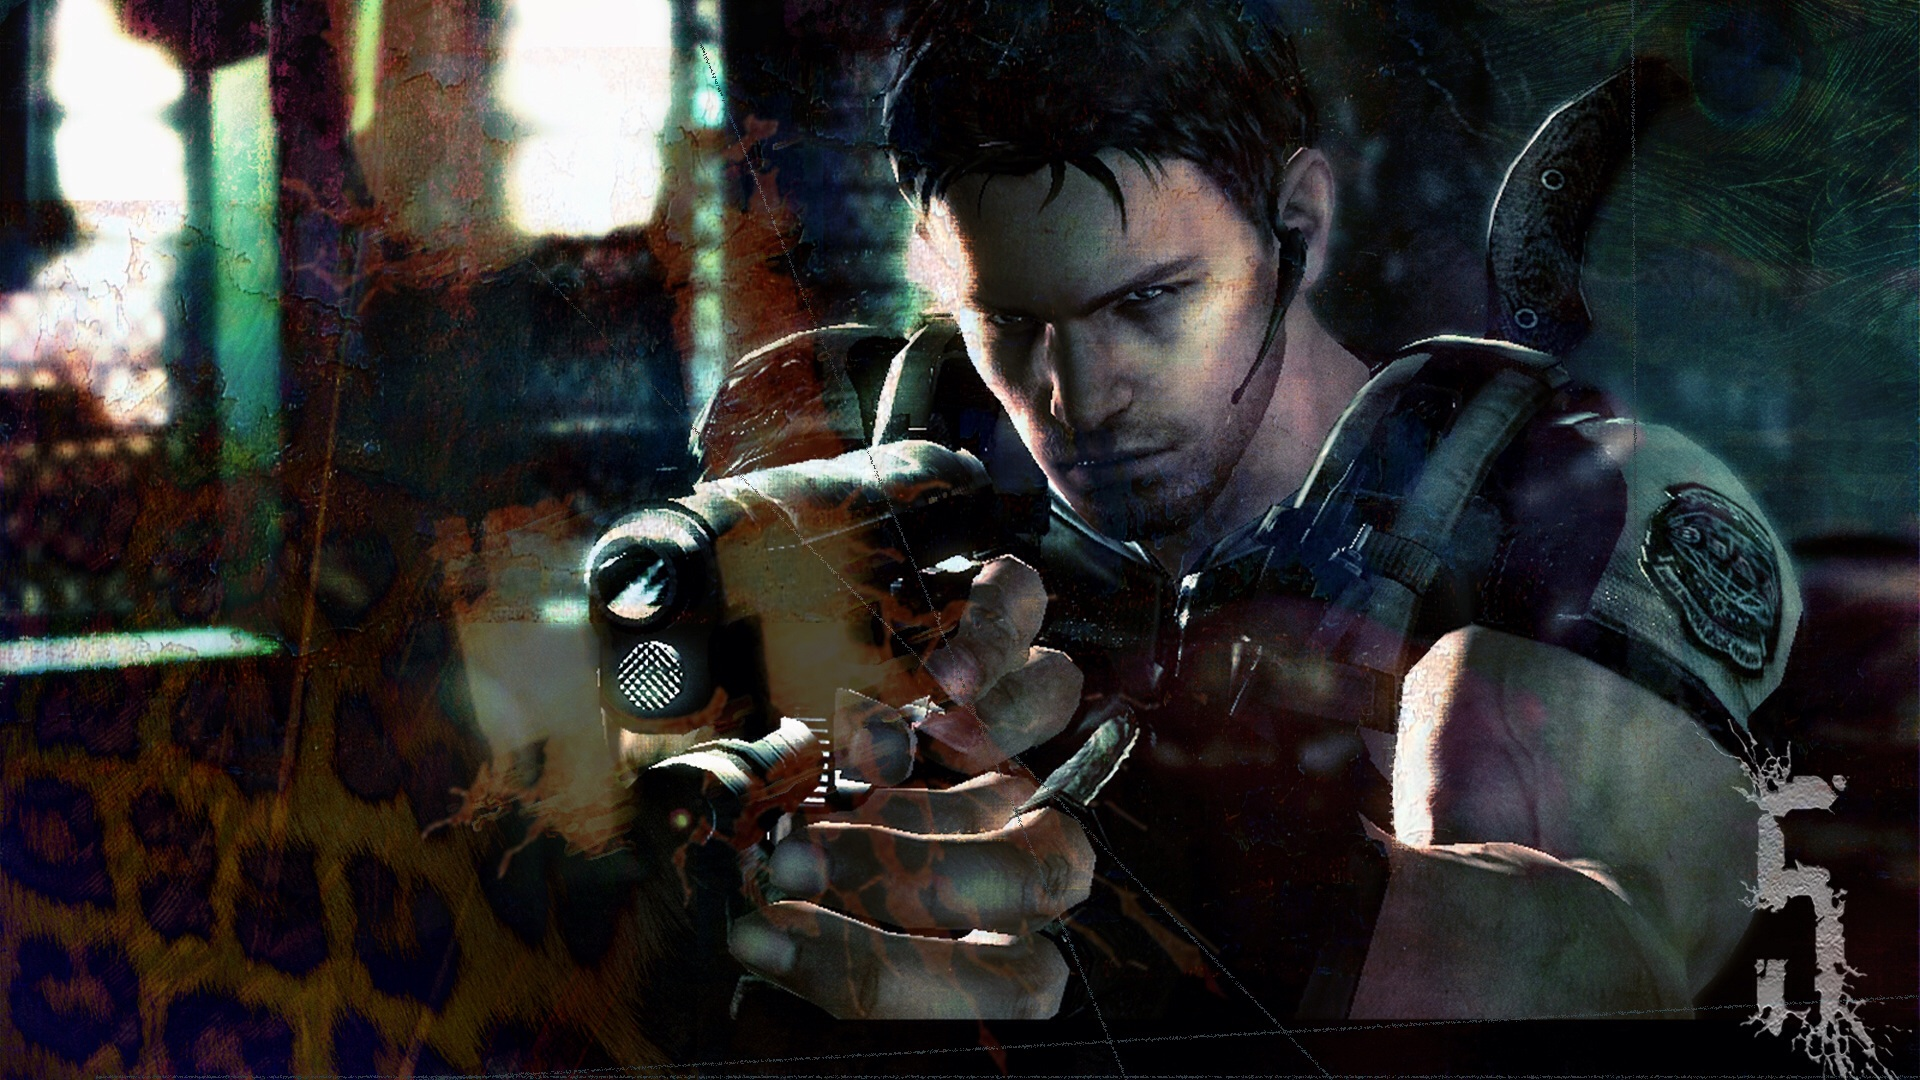 Hd wallpaper resident evil - Resident Evil 5 Images Chris Redfield Hd Wallpaper And Background Photos